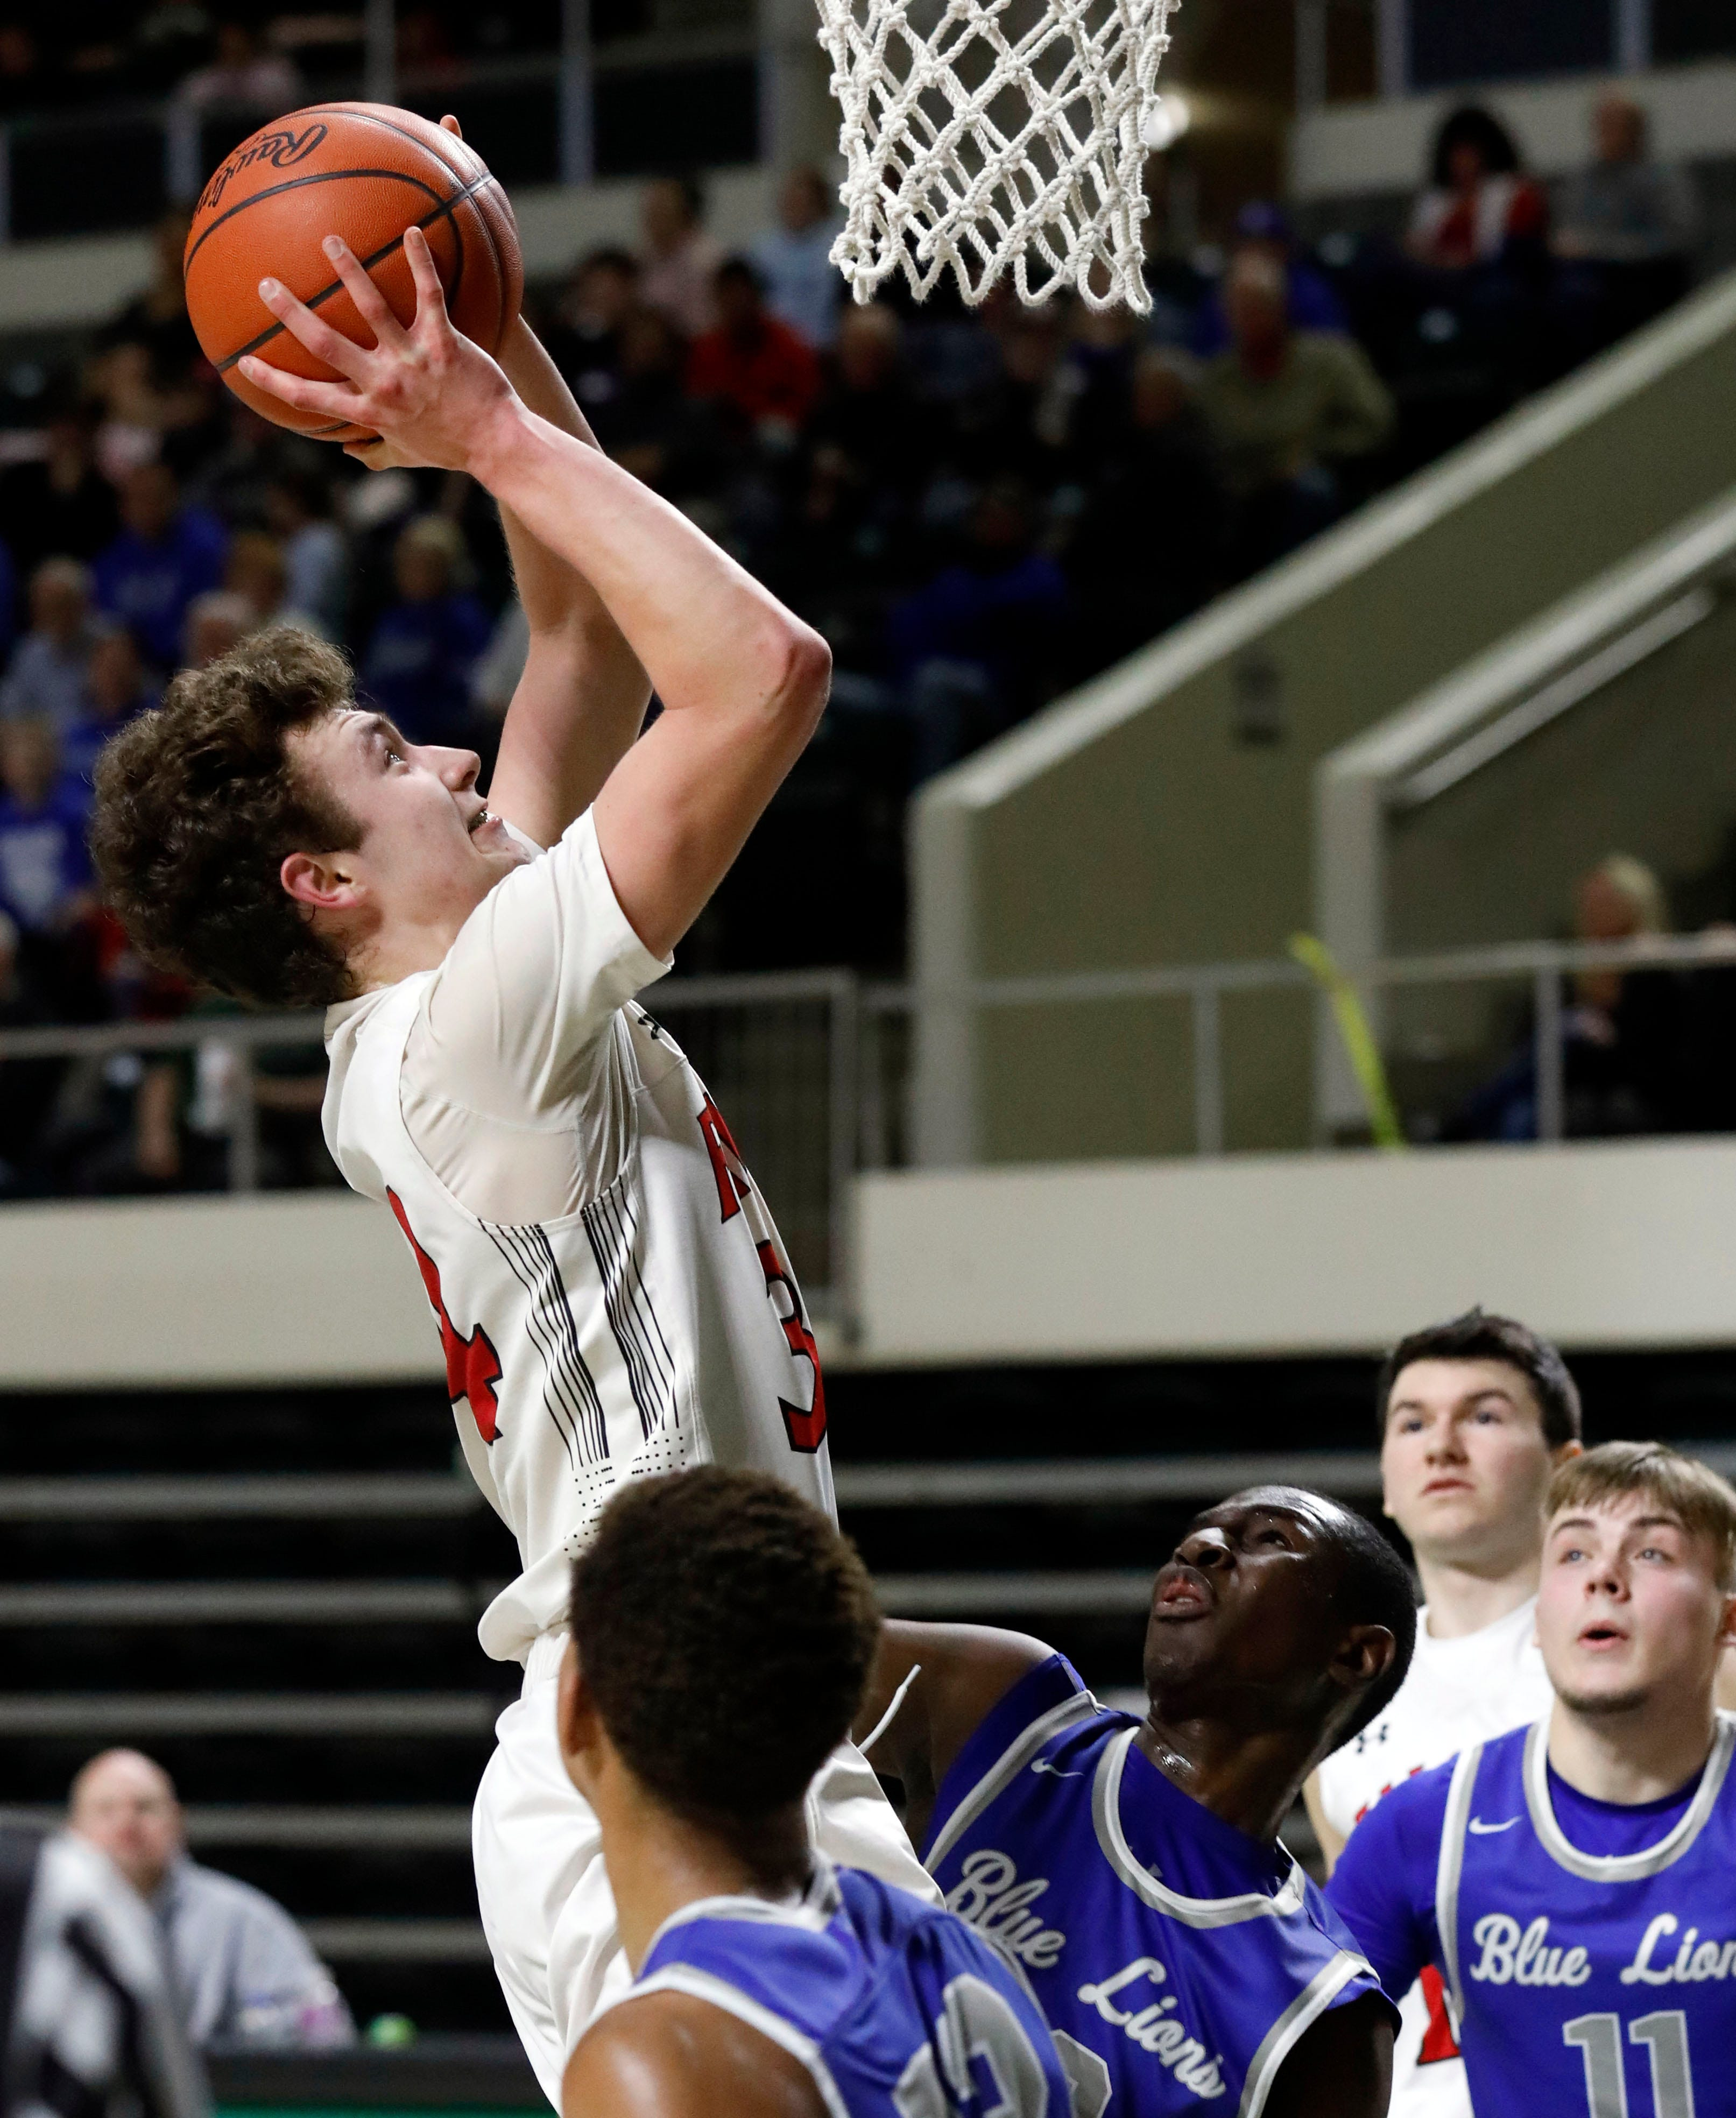 Fairfield Union's Huston Harrah takes a shot during Thursday night's Division II District Semifinal, Feb. 28, 2019, at the Convocation Center at Ohio University in Athens.